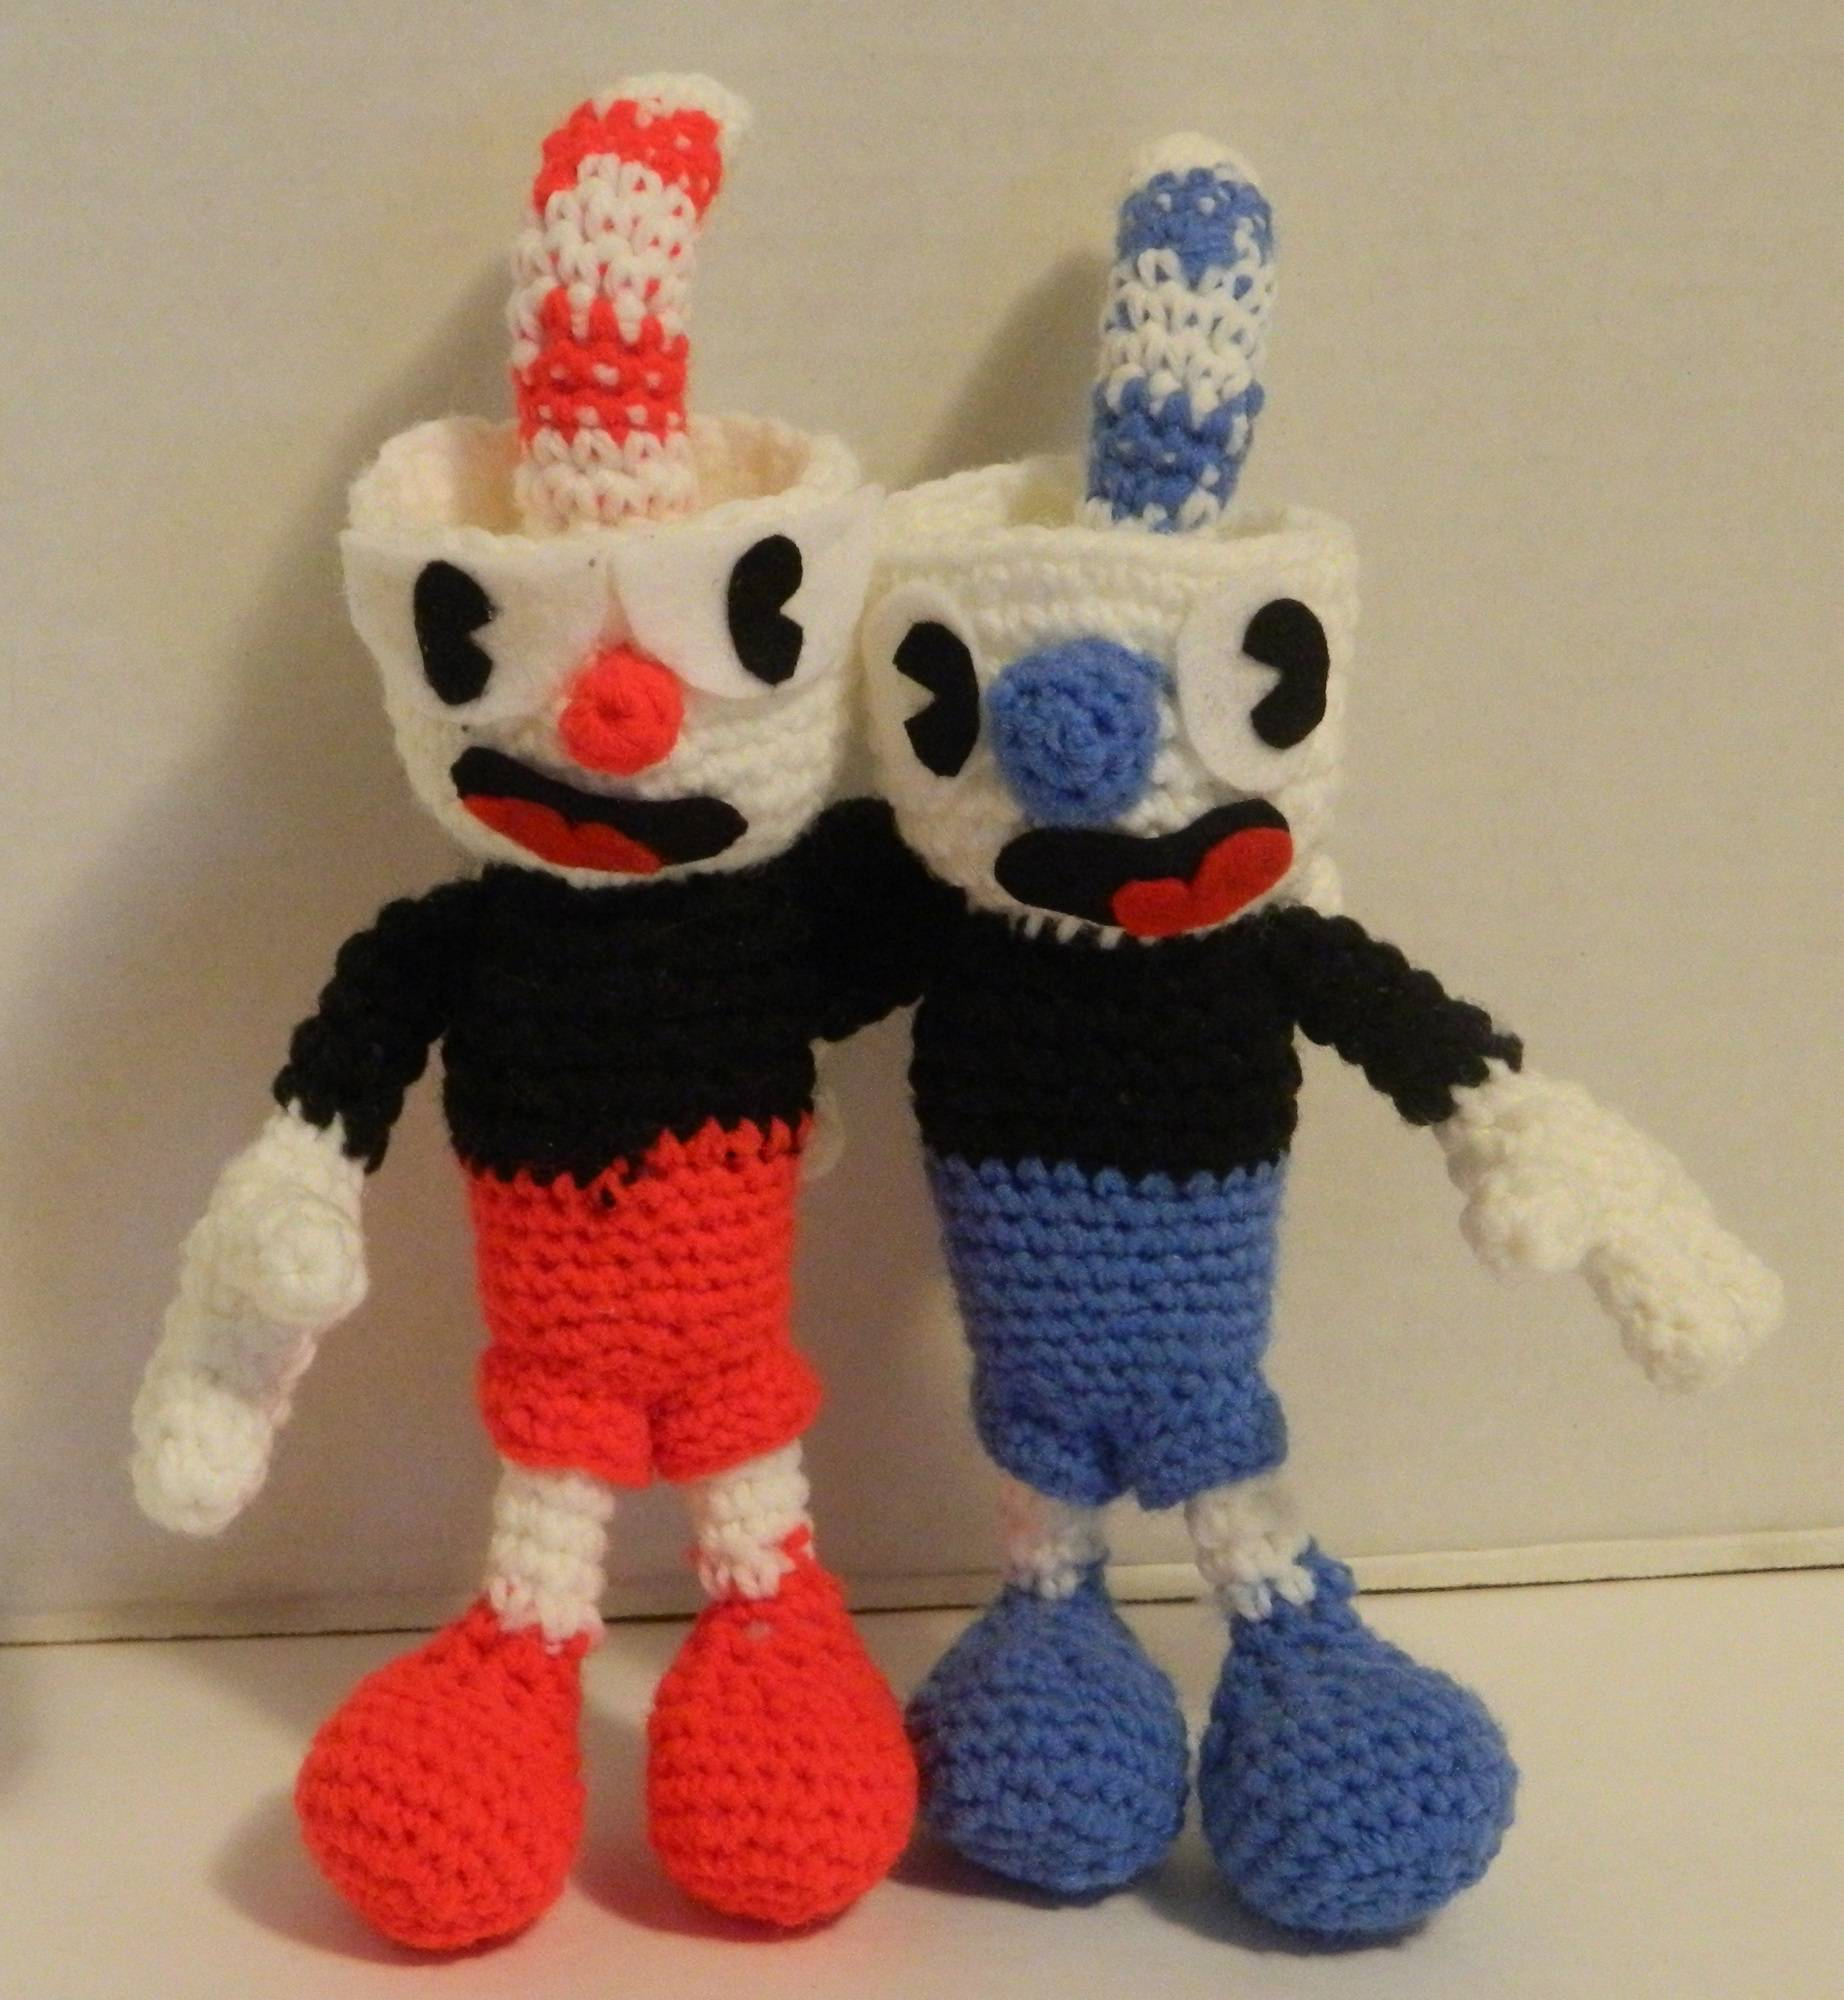 Cuphead and Mugman Amigurumi